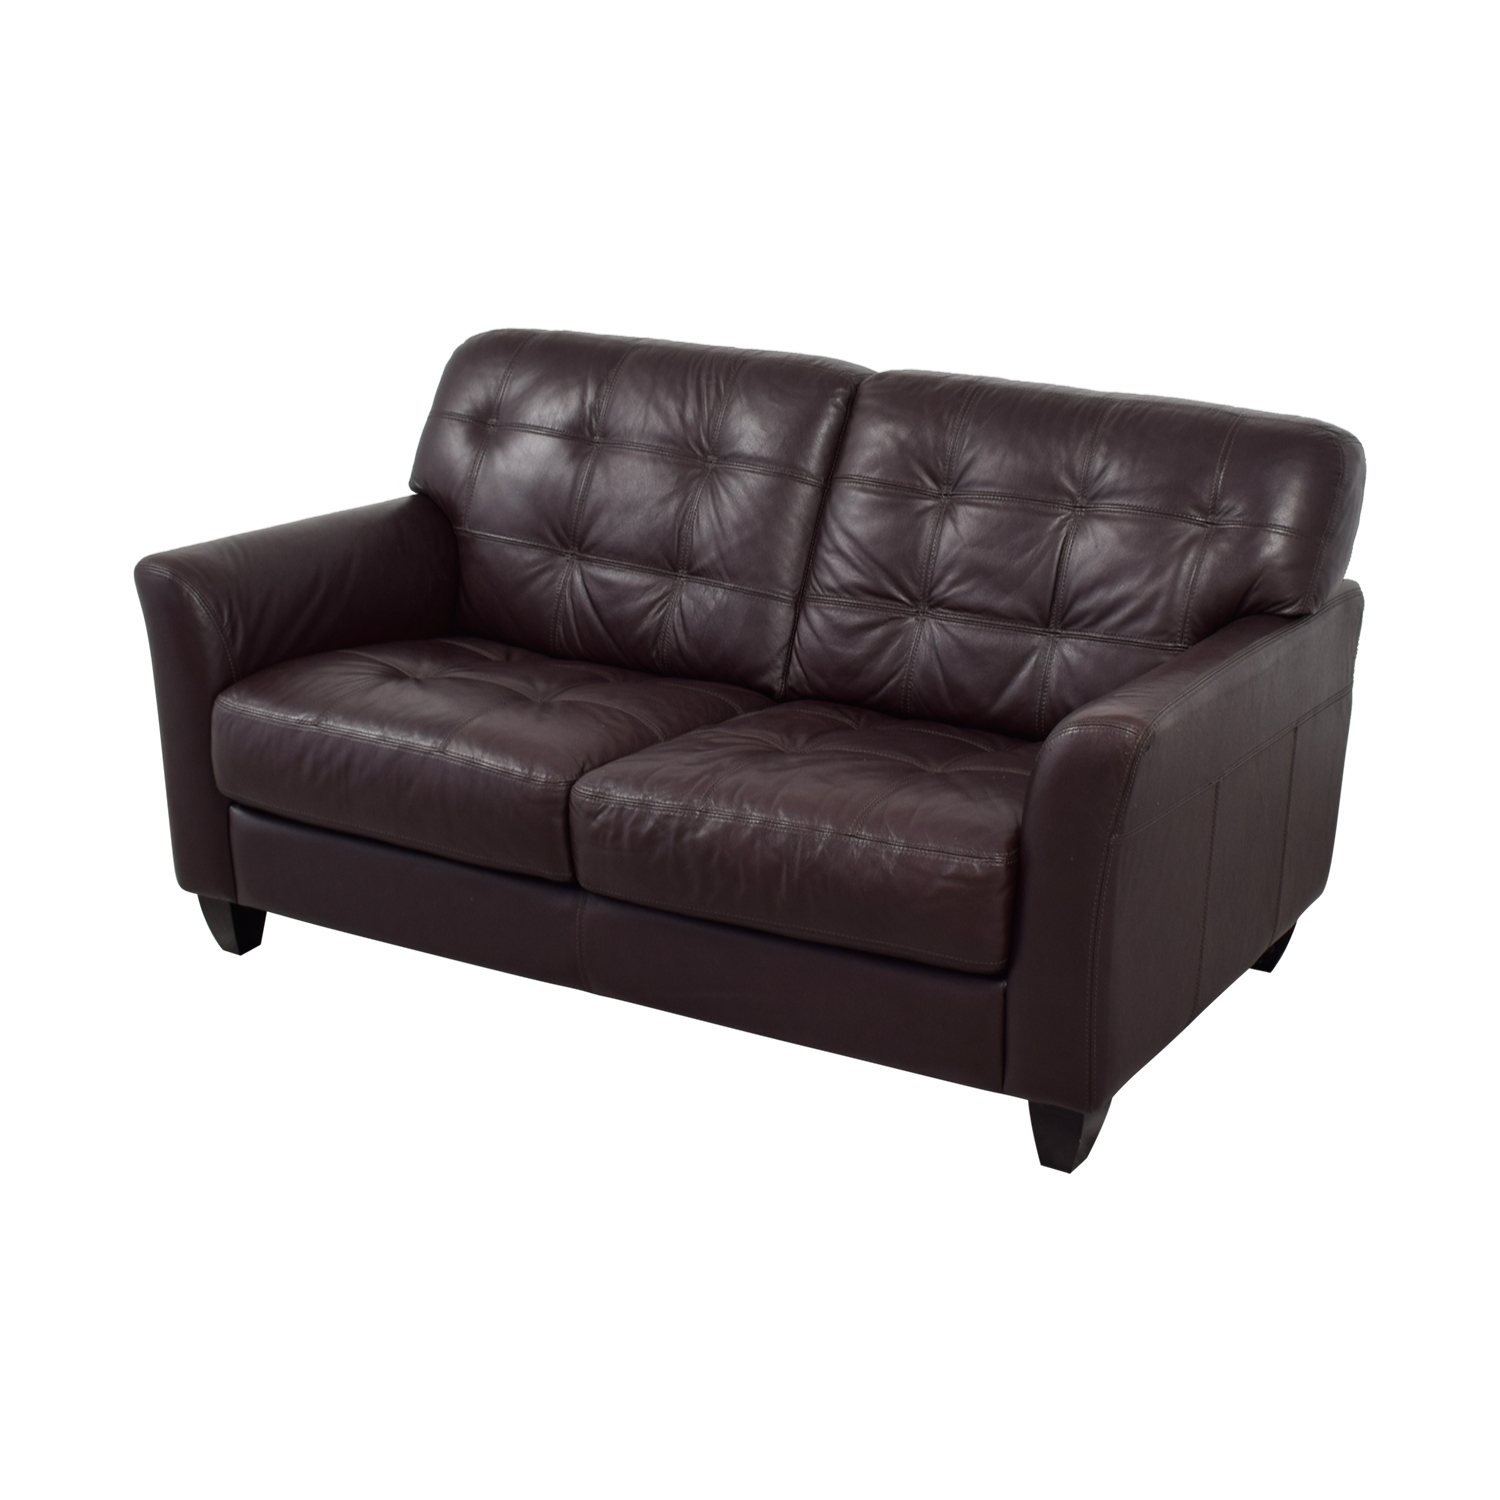 buy Macy's Kaleb Loveseat Macy's